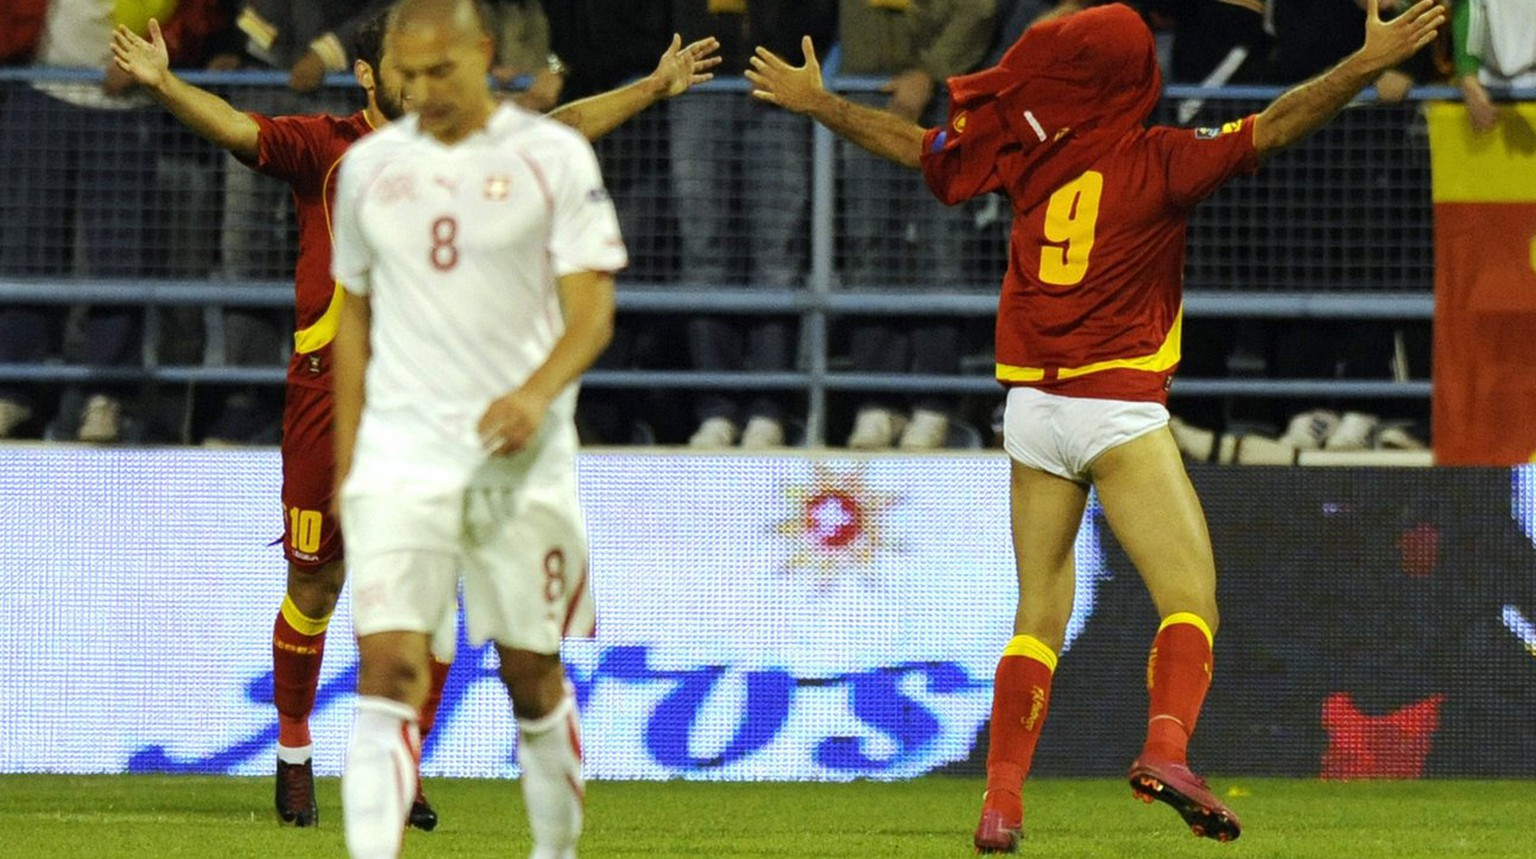 Montenegro forward Mirko Vucinic, right, celebrates the first goal in front of Swiss midfielder Goekhan Inler, left, during the Euro 2012 group G qualification soccer match between Switzerland and Montenegro at the City Stadium, in Podgorica, Montenegro, Friday, October 8, 2010. (KEYSTONE/Laurent Gillieron)